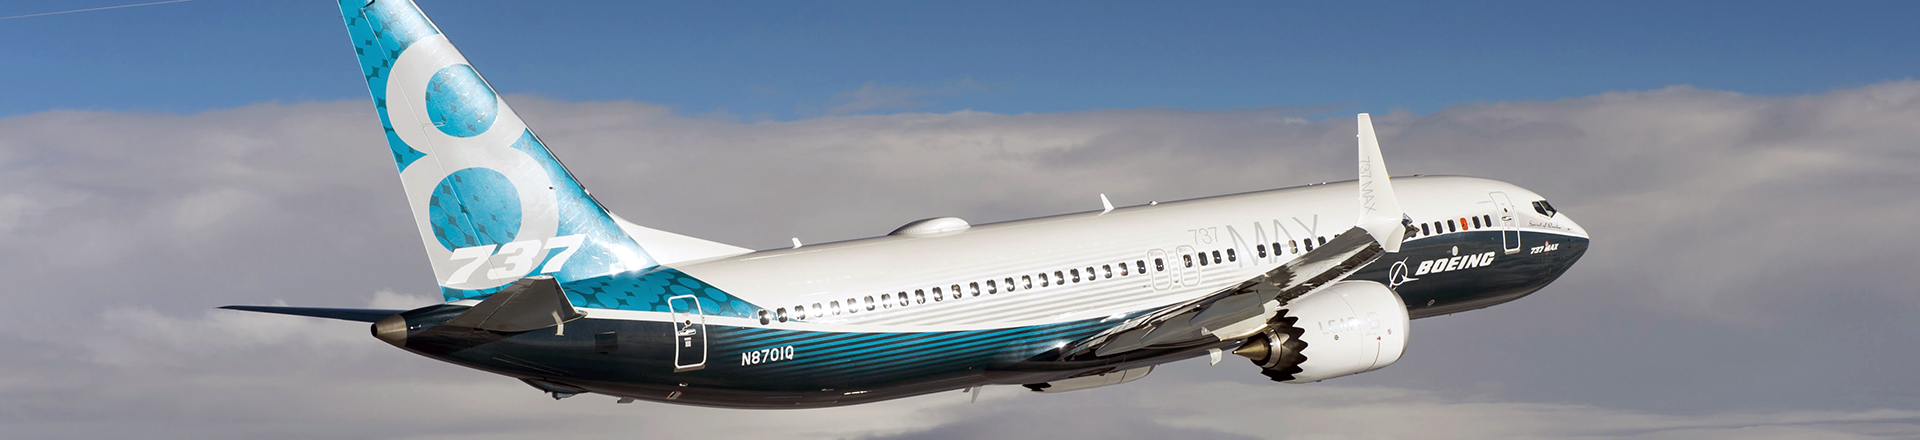 boeing-737-max-1920×440-large-062518